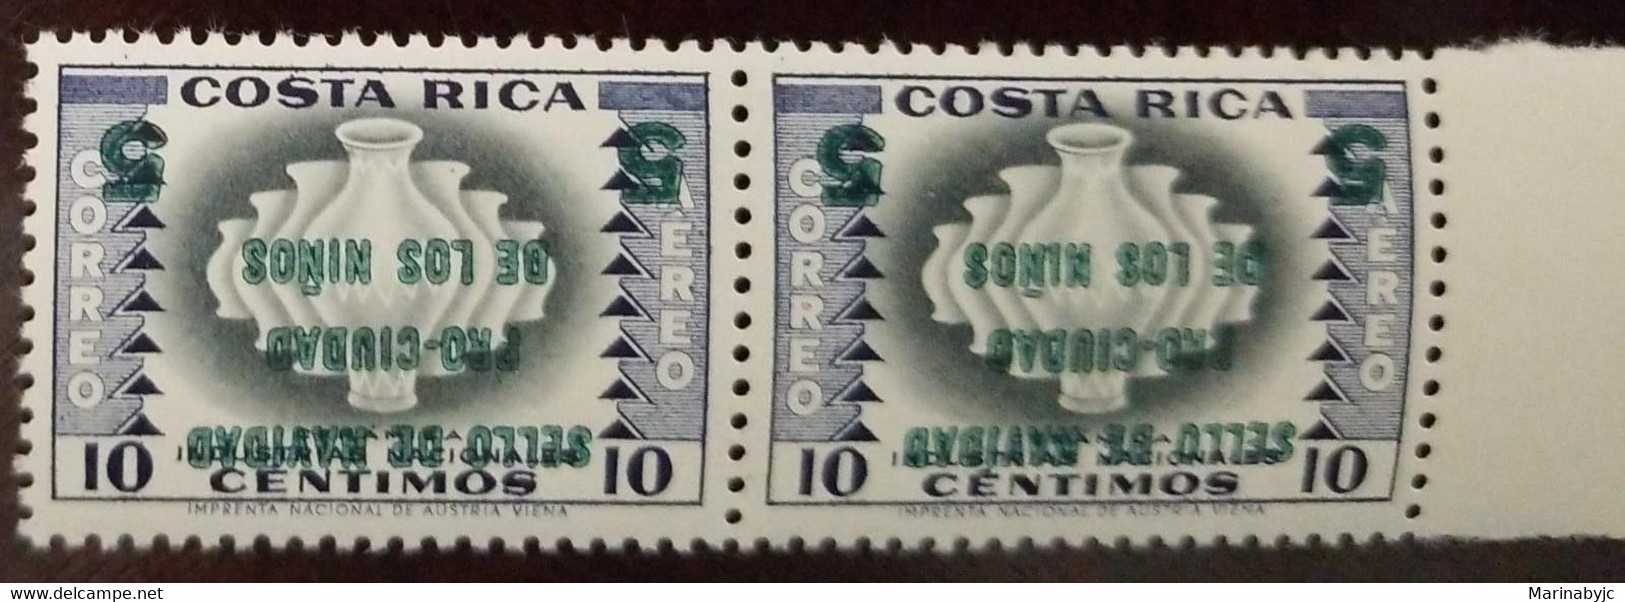 L) 1953 COSTA RICA, INVERTED OVERPRINT, NATIONAL INDUSTRIES, 10 CENTS, CHRISTMAS SEAL FOR CHILD CARE, AIRMAIL - Costa Rica